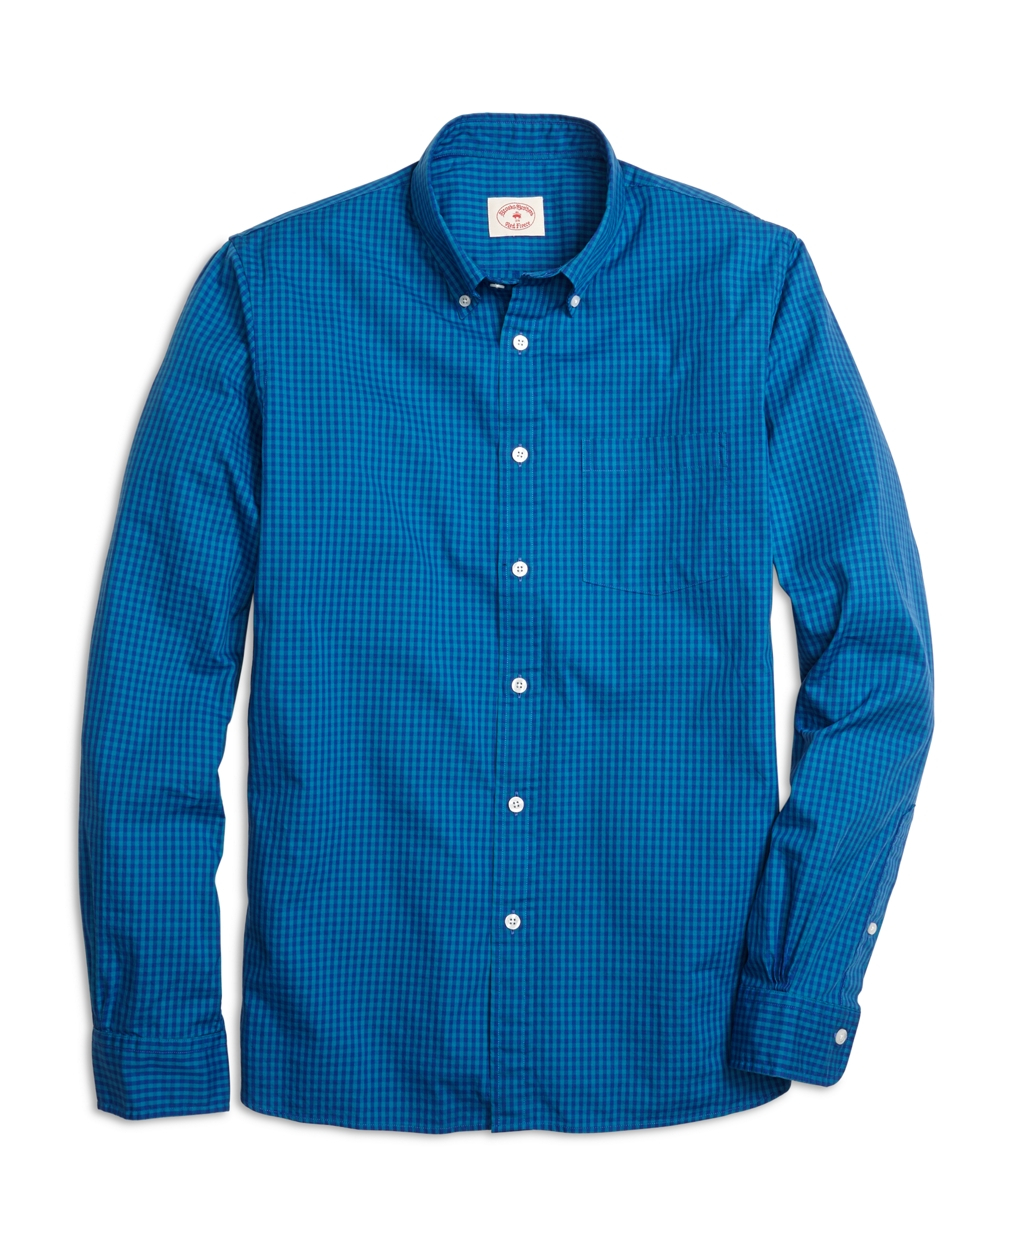 Brooks brothers gingham oxford sport shirt in blue for men for Brooks brothers sports shirts